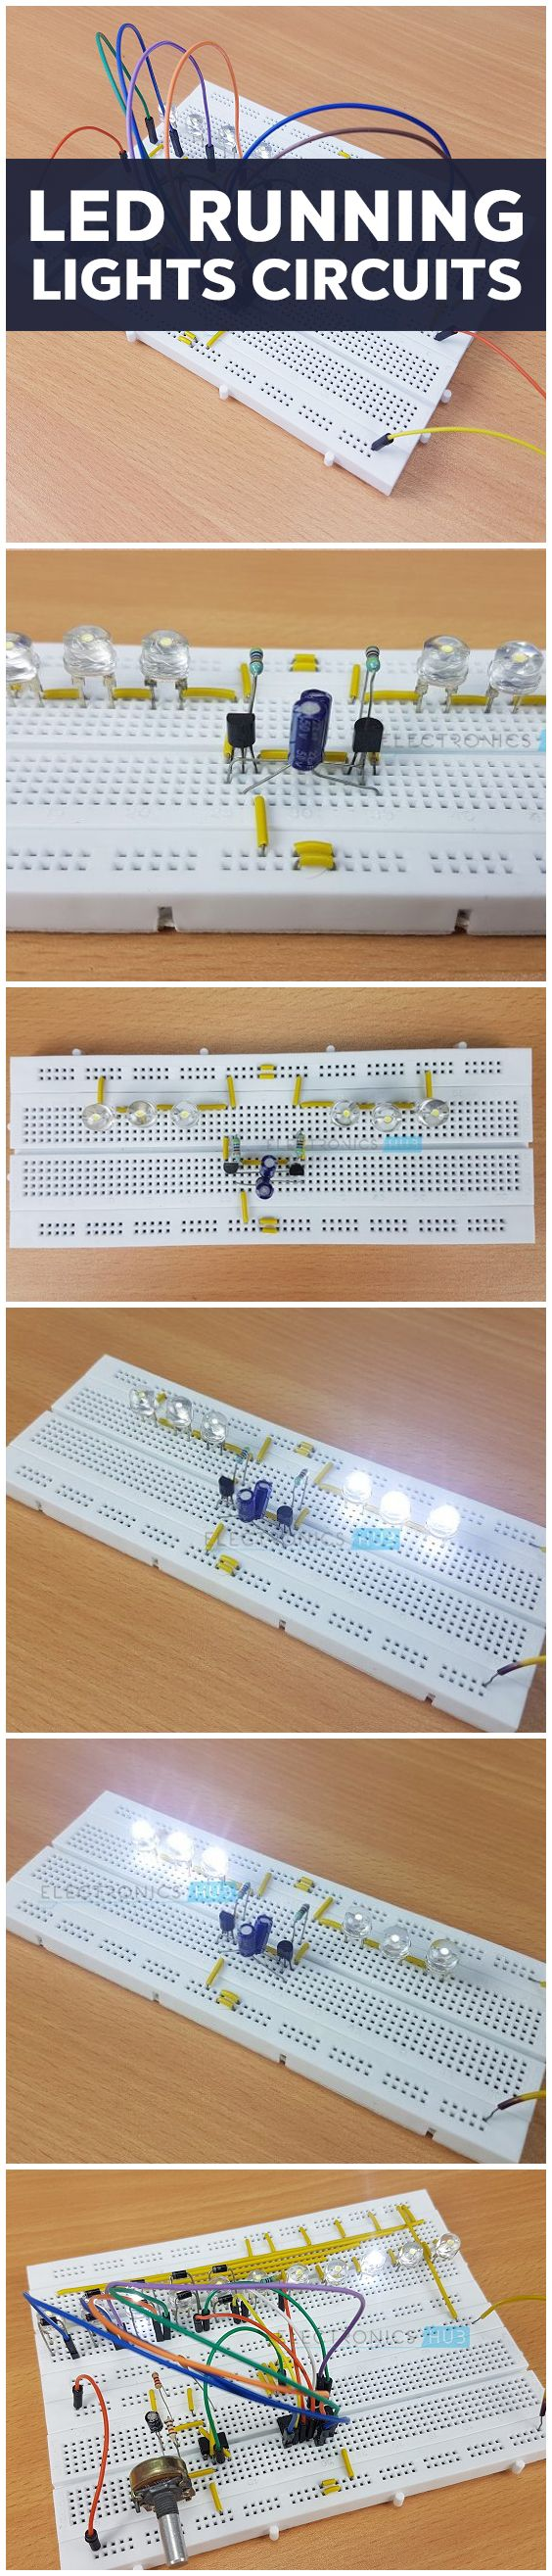 27 Best Arduino Images On Pinterest Projects Classroom Ultrasonic Circuit Page 6 Audio Circuits Nextgr In This Article We Will See Different Led Running Lights Which Are Also